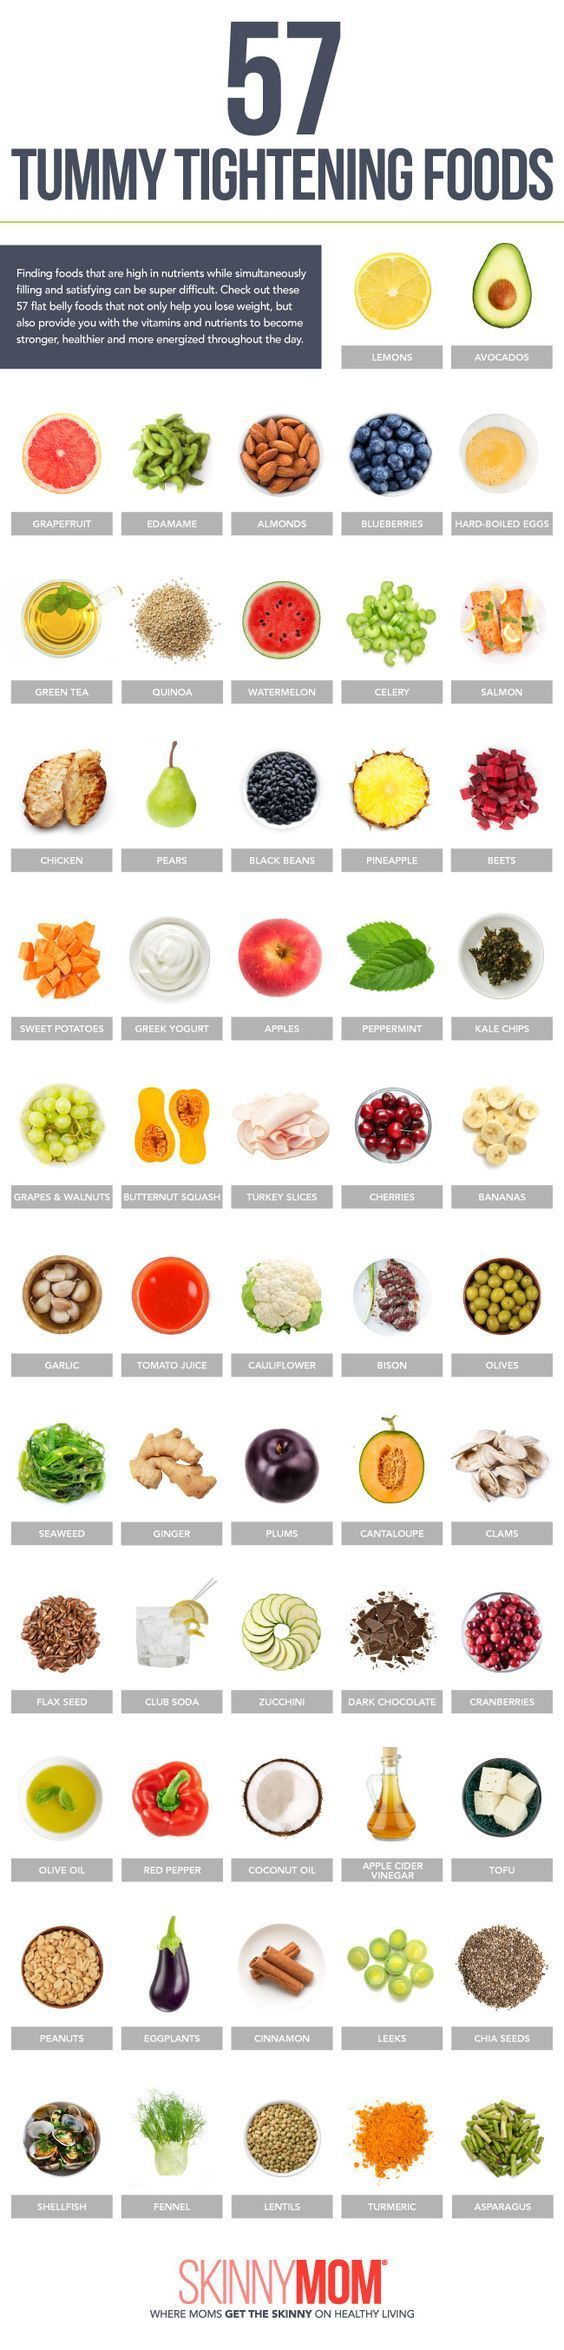 For good health what to eat - Eat These 57 Tummy Tightening Foods Every Day